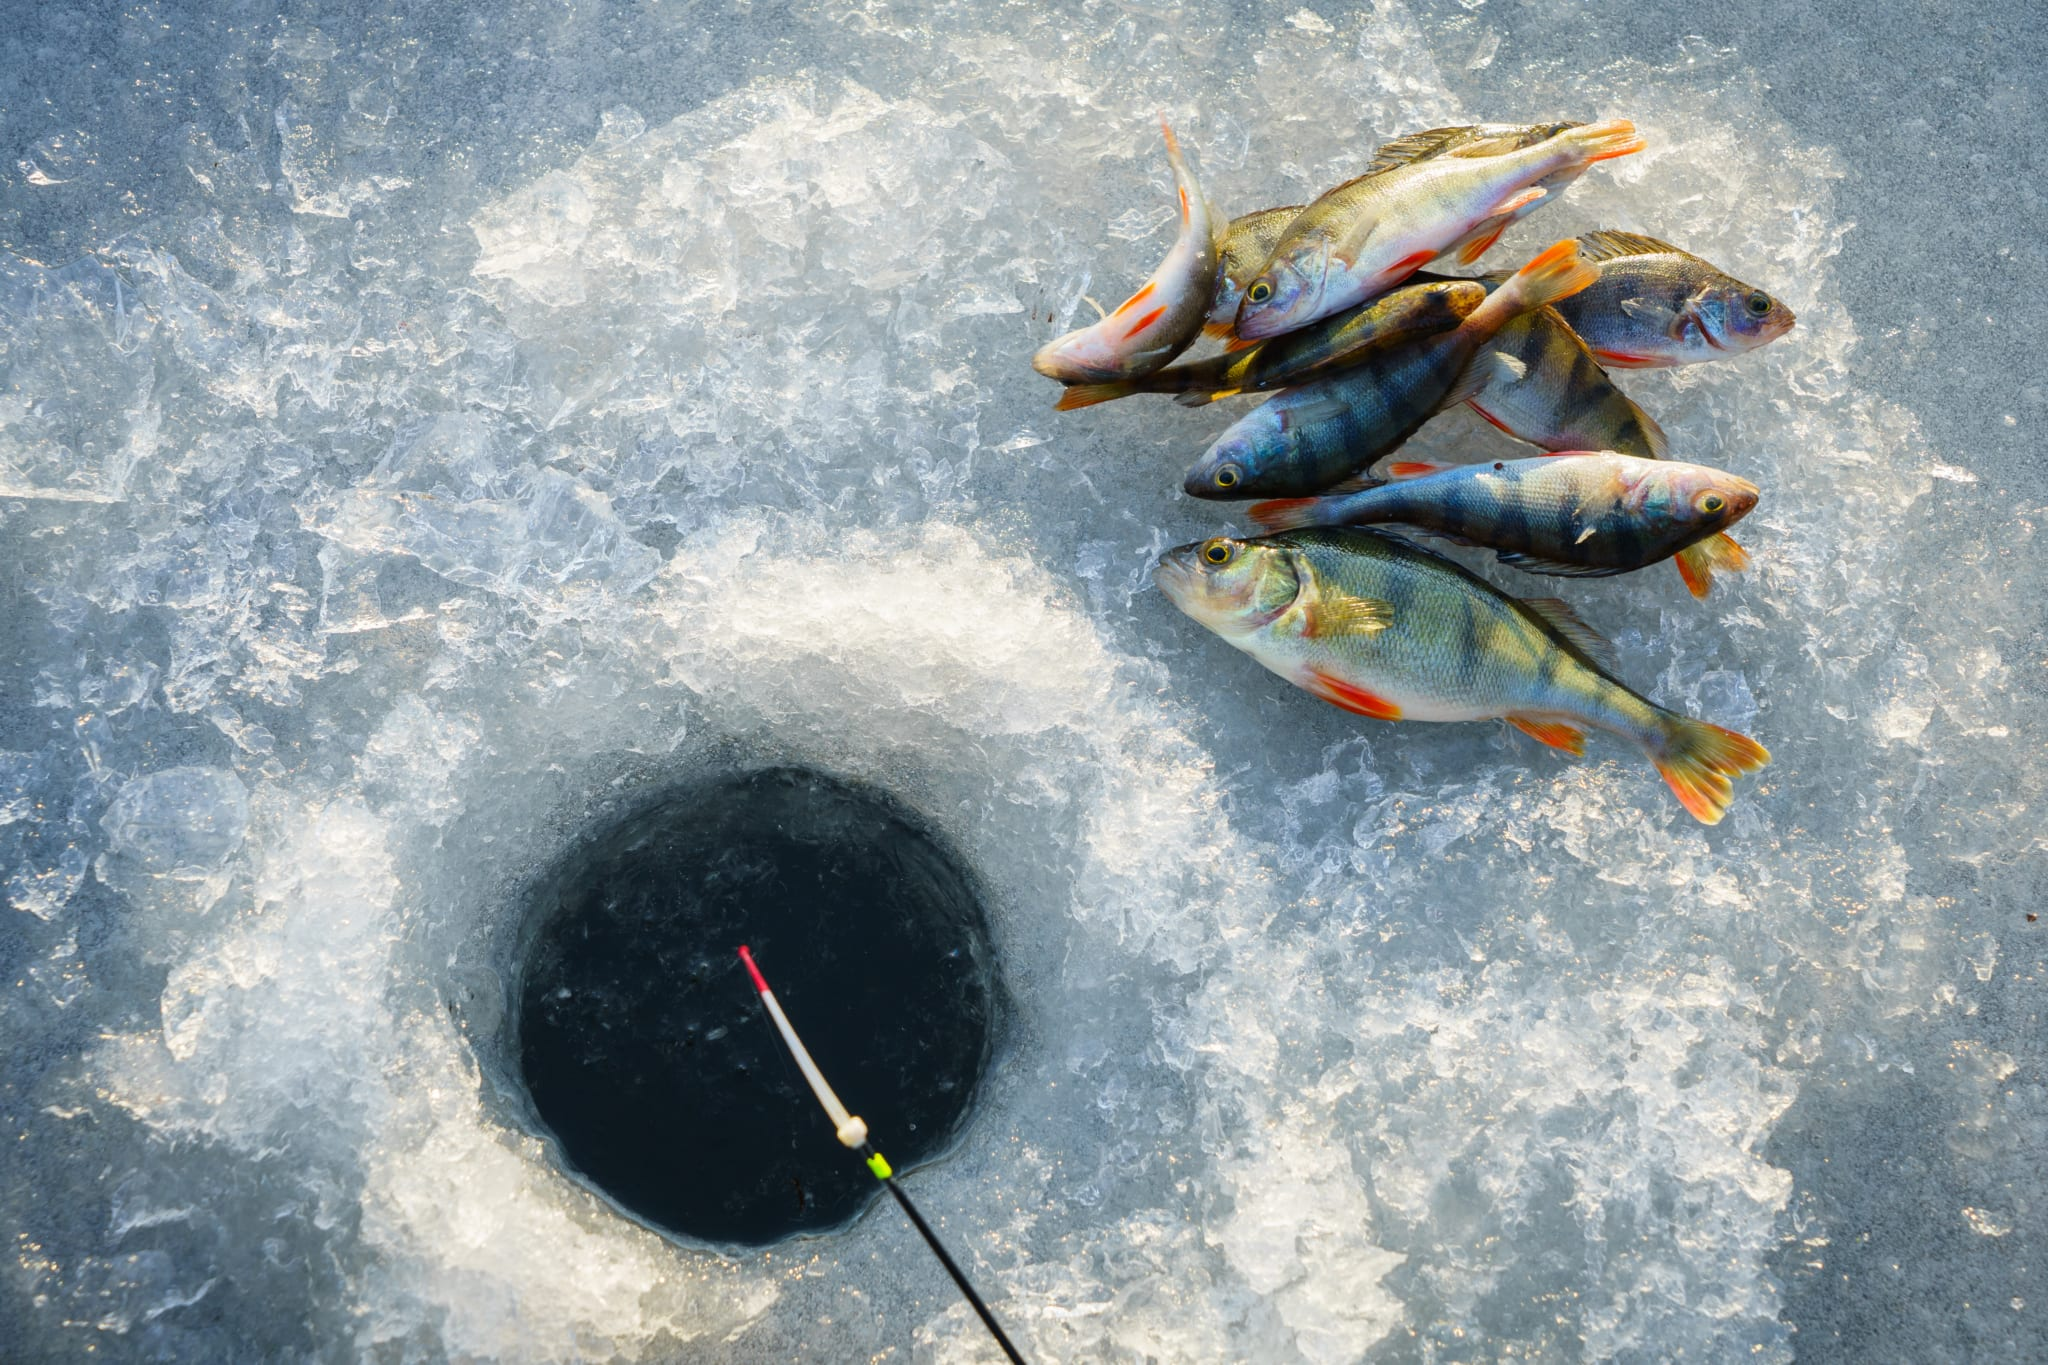 Fish laying on ice near ice fishing hole.